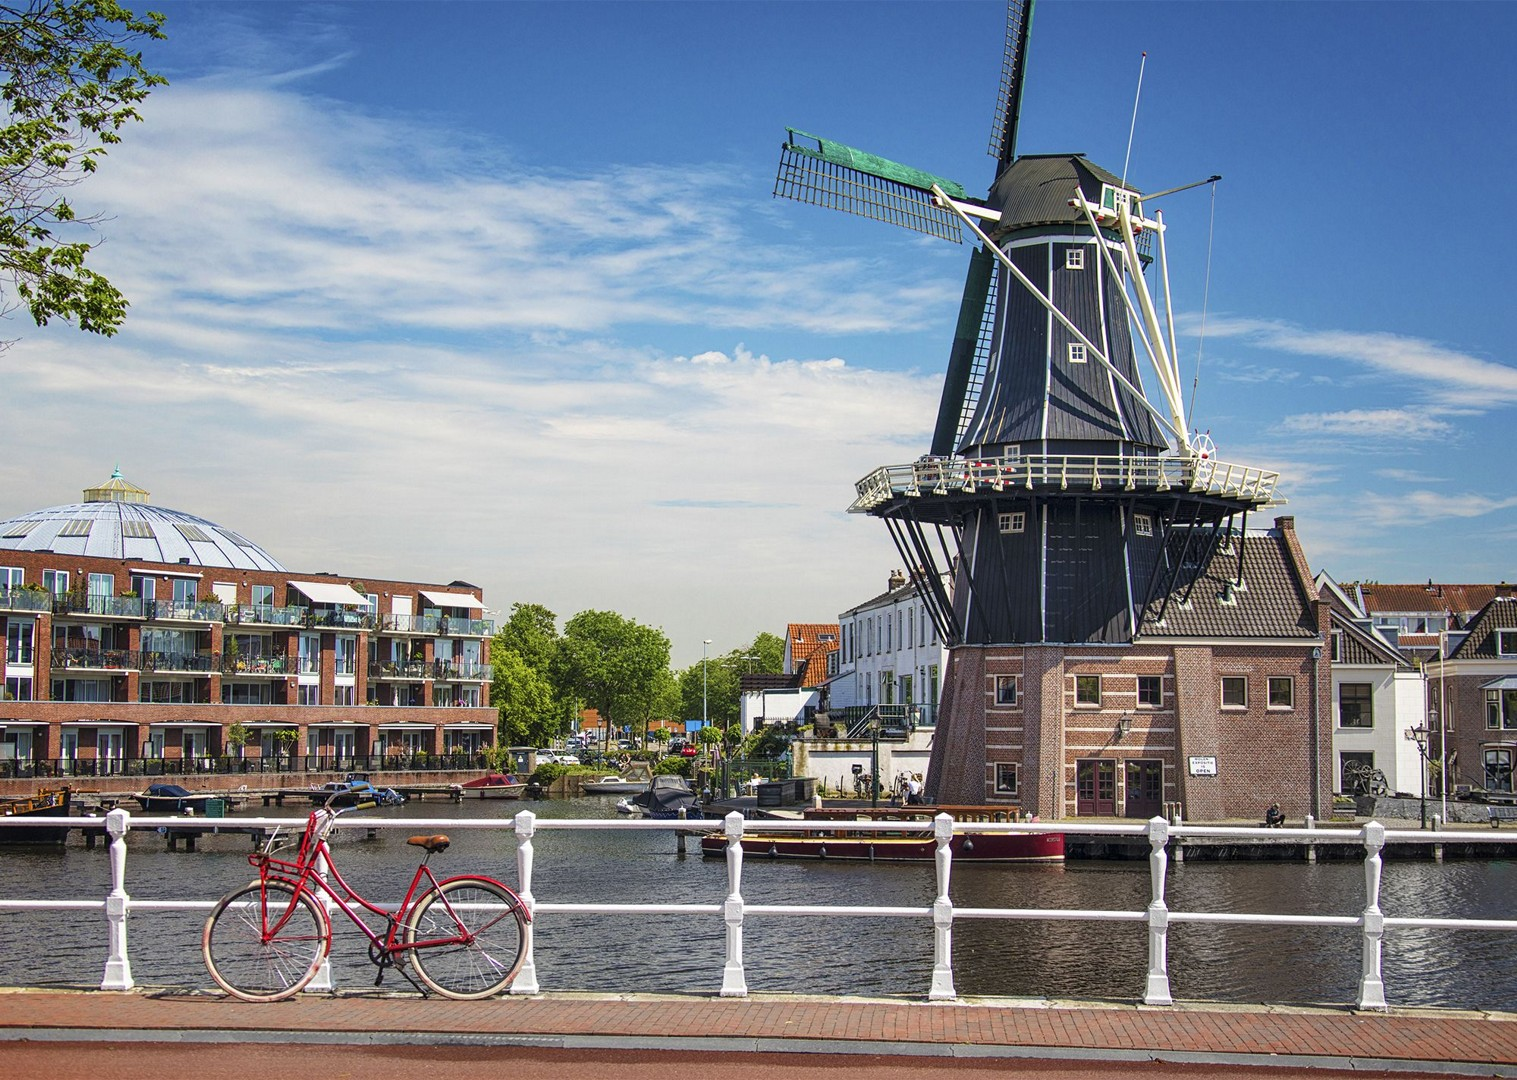 bike-route-past-classic-holland-windmill-landmarks.jpg - Holland - Green Heart - Bike and Barge Holiday - Leisure Cycling